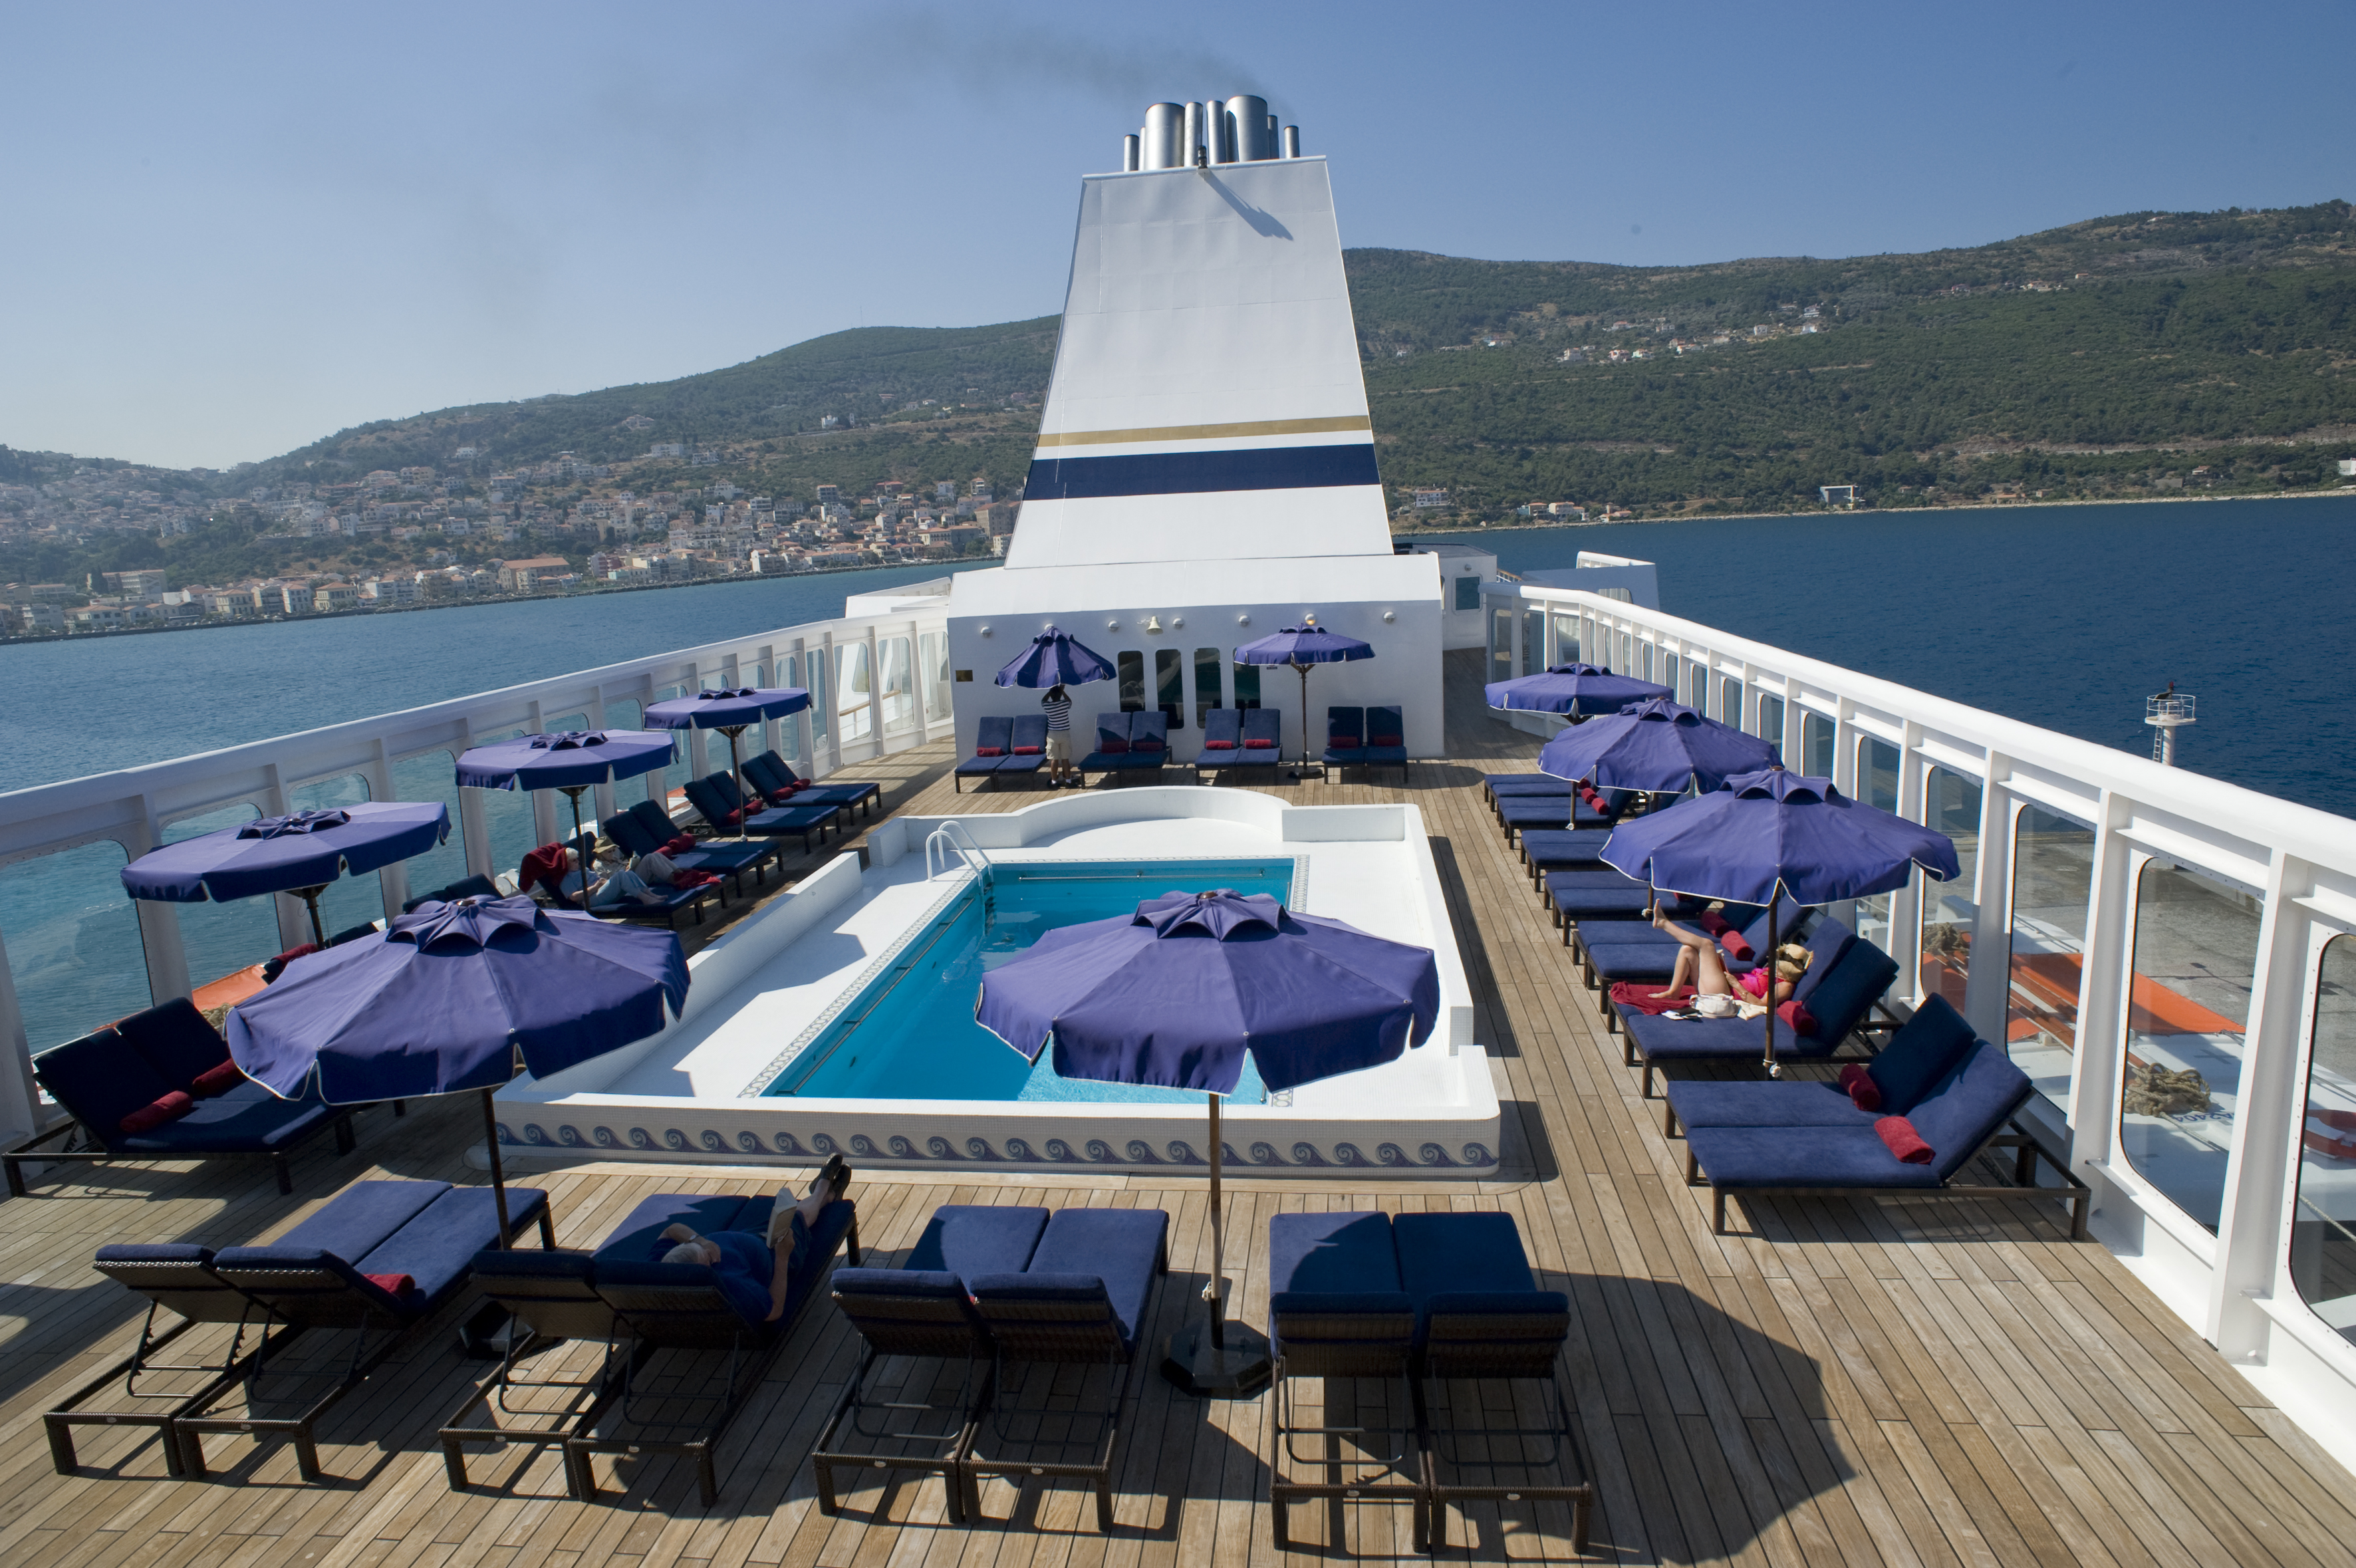 Voyages to Antiquity Aegean Odyssey Pool Deck.jpg